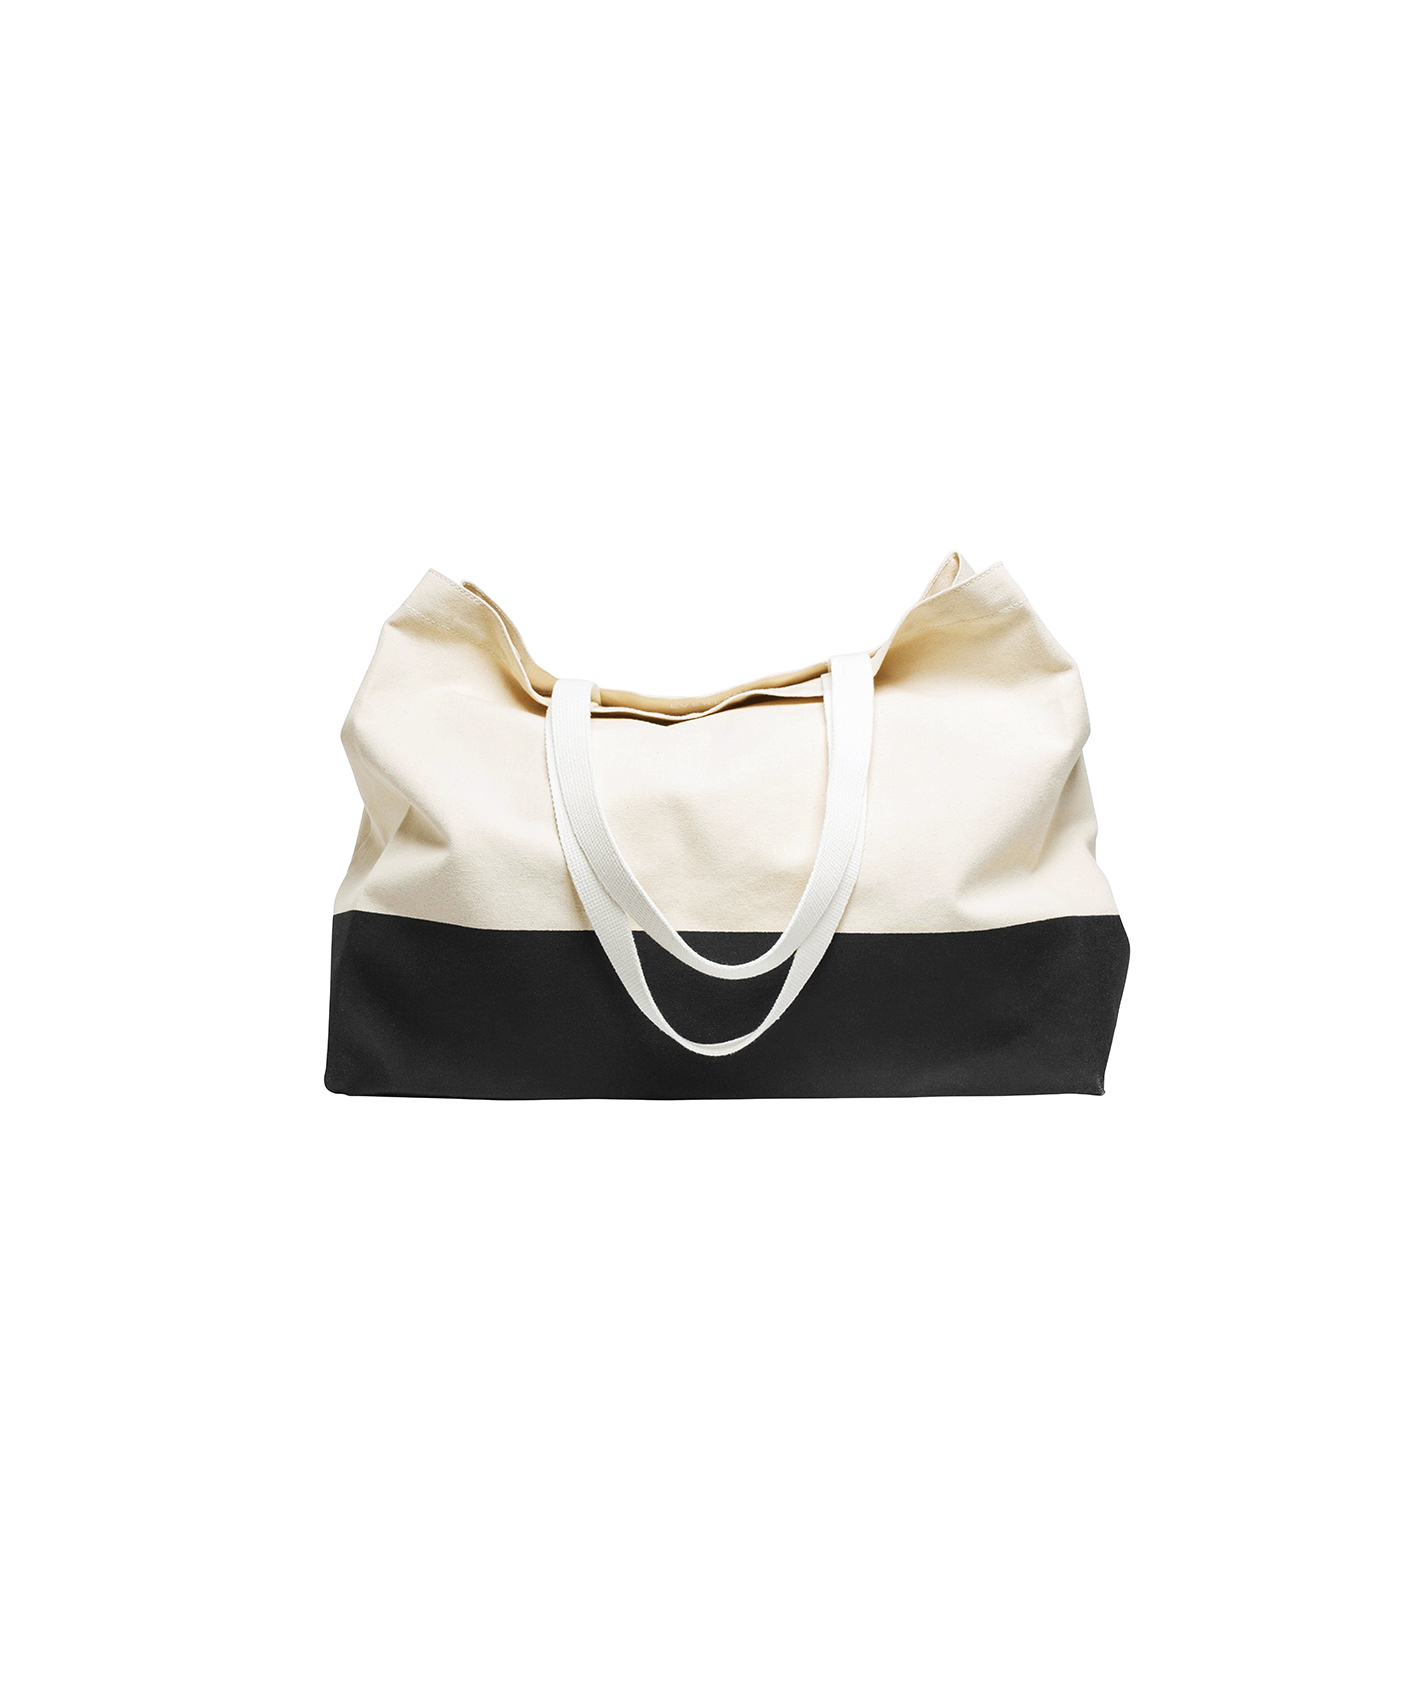 Everlane Beach Tote